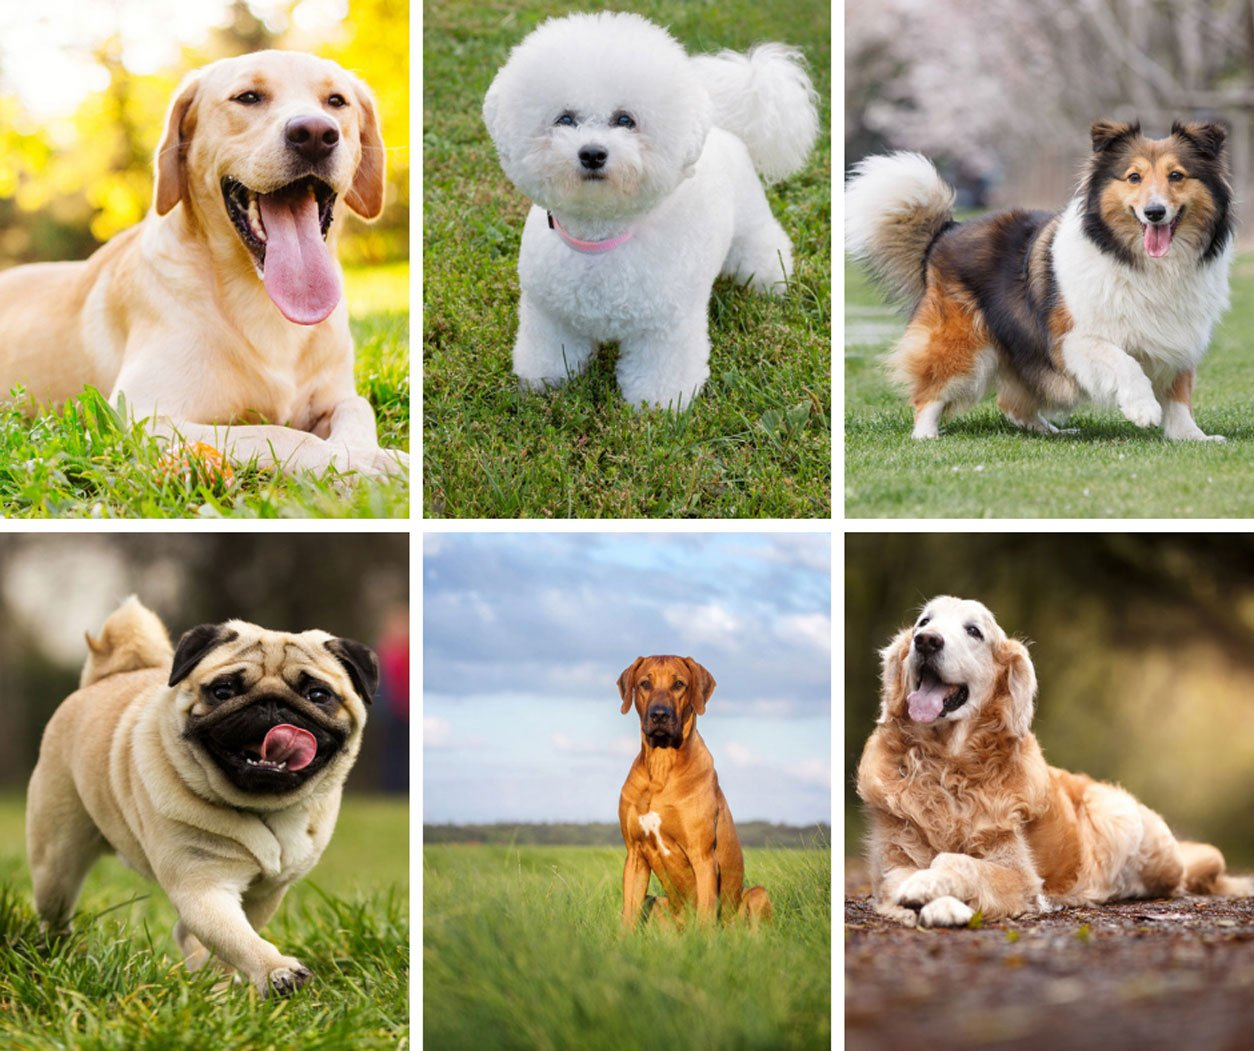 The 10 Best Dogs for Kids